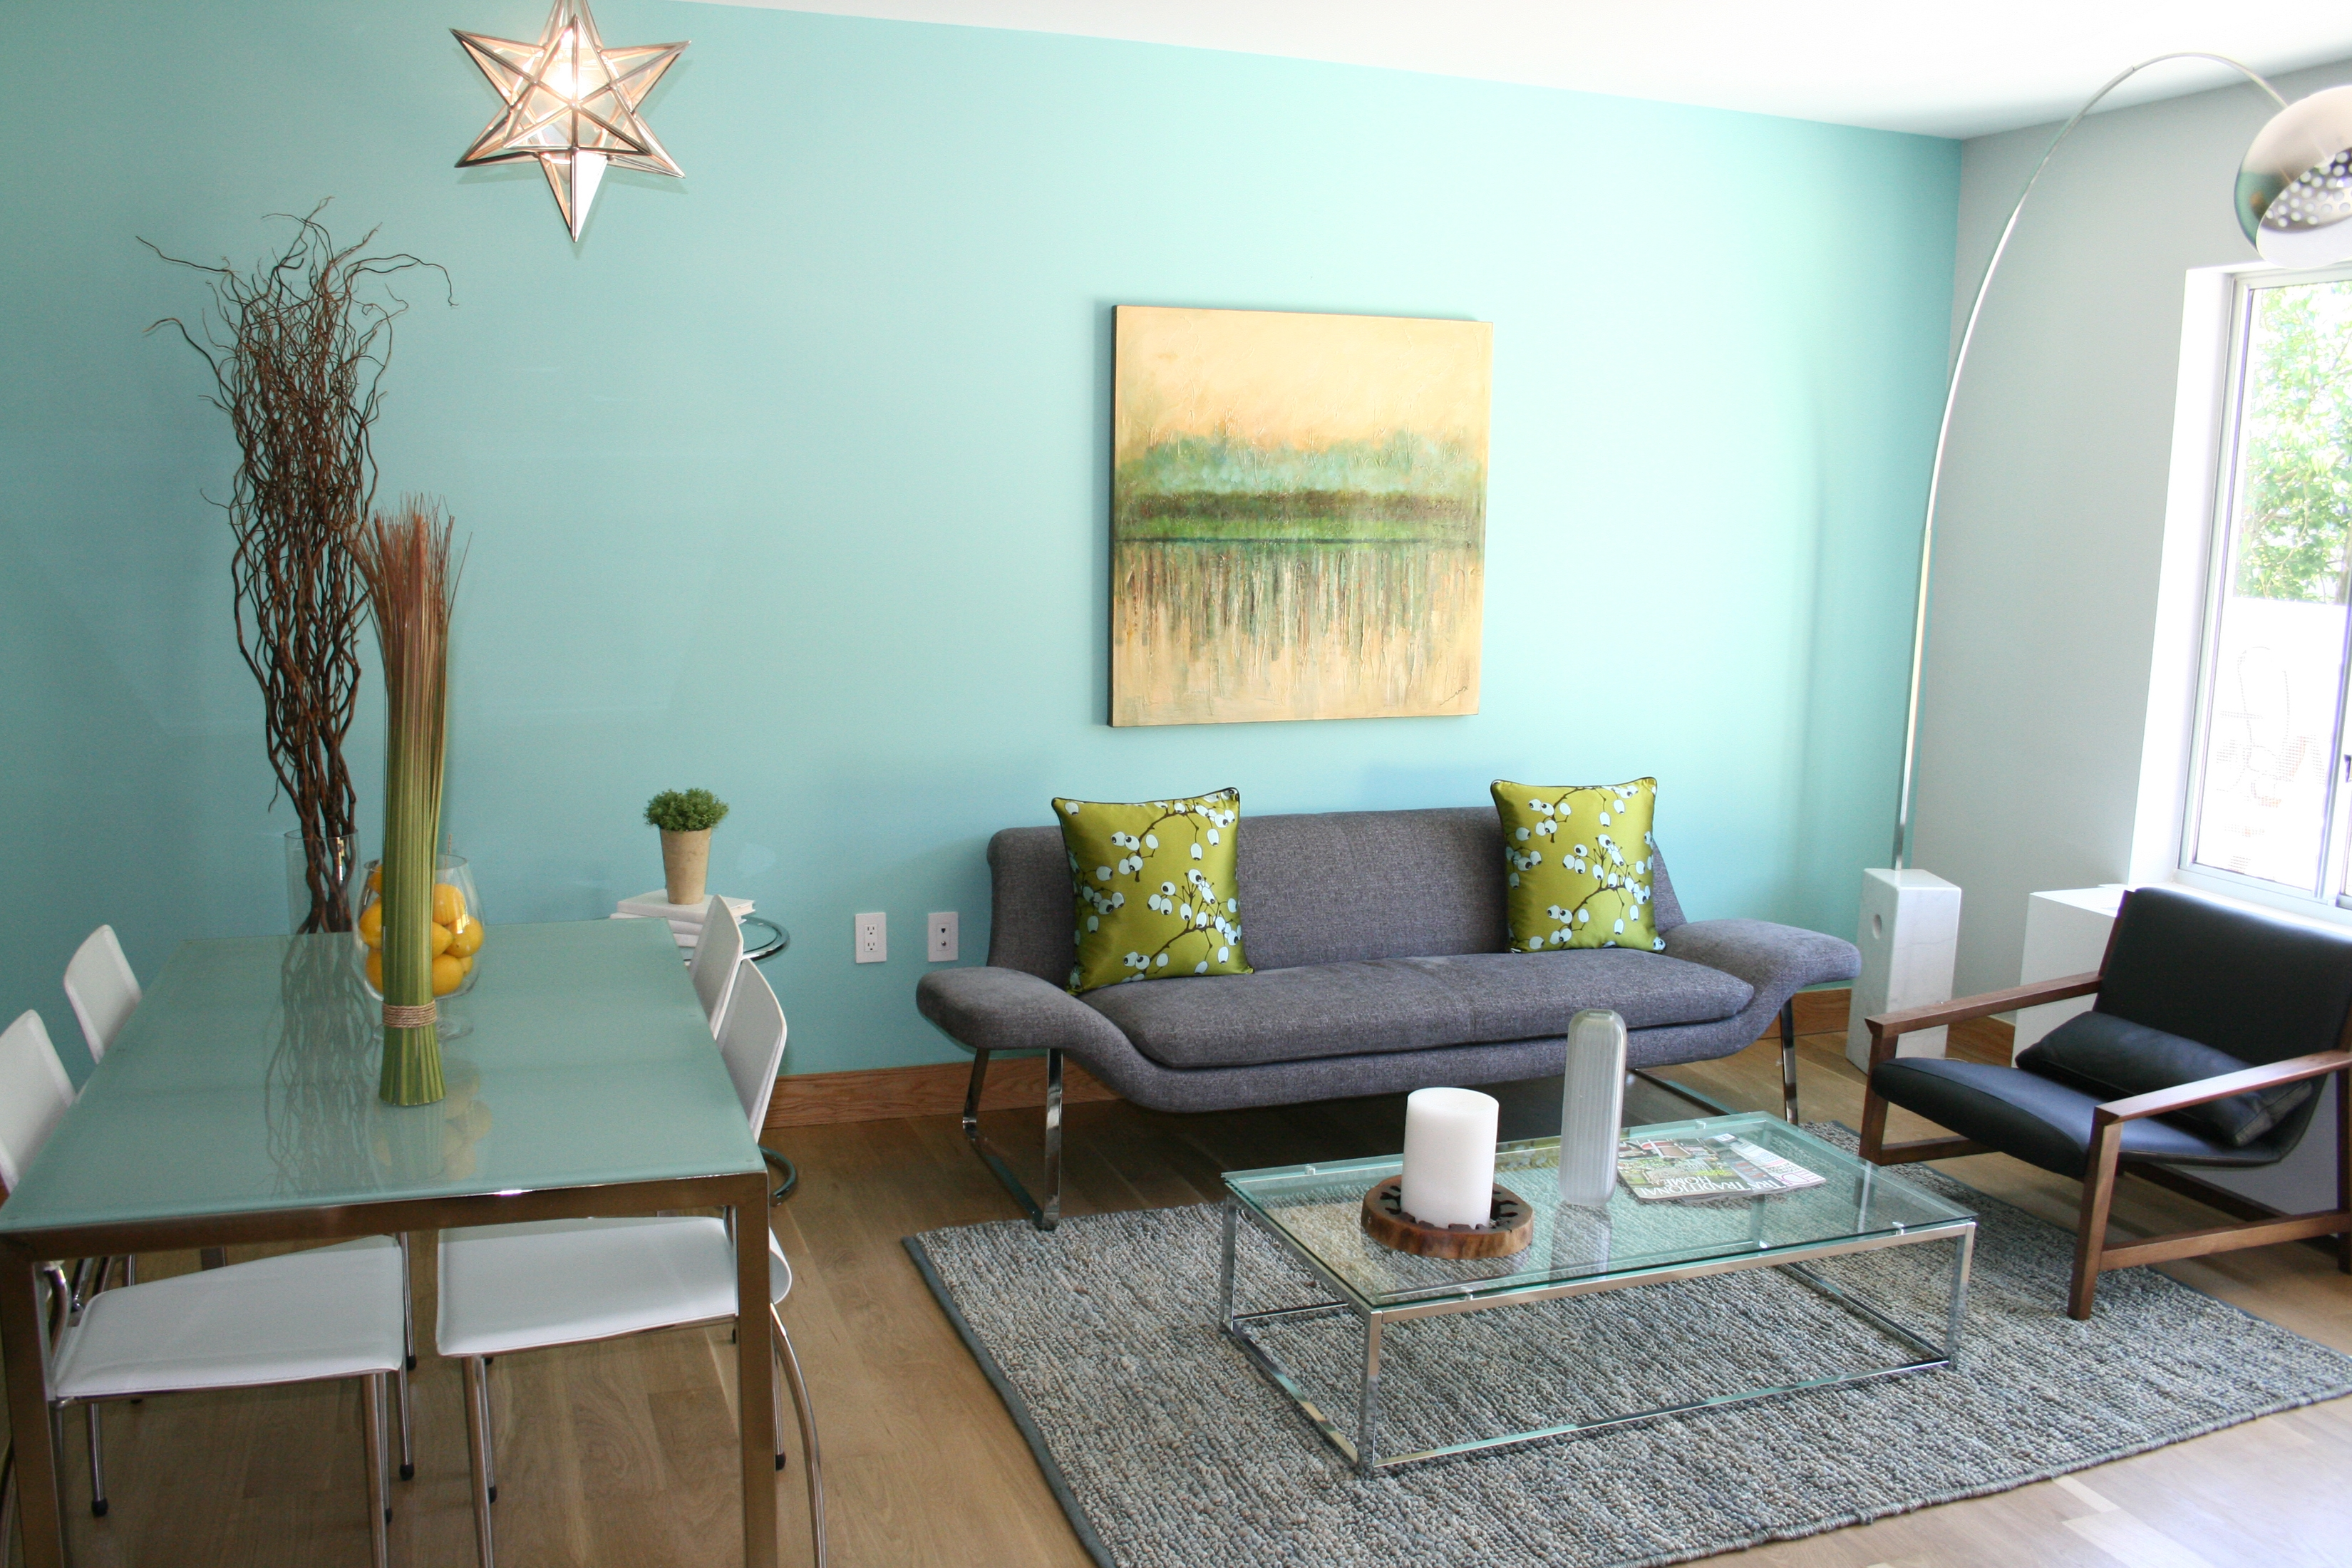 Decorating Your Living Room In A Budget Diy House Decor